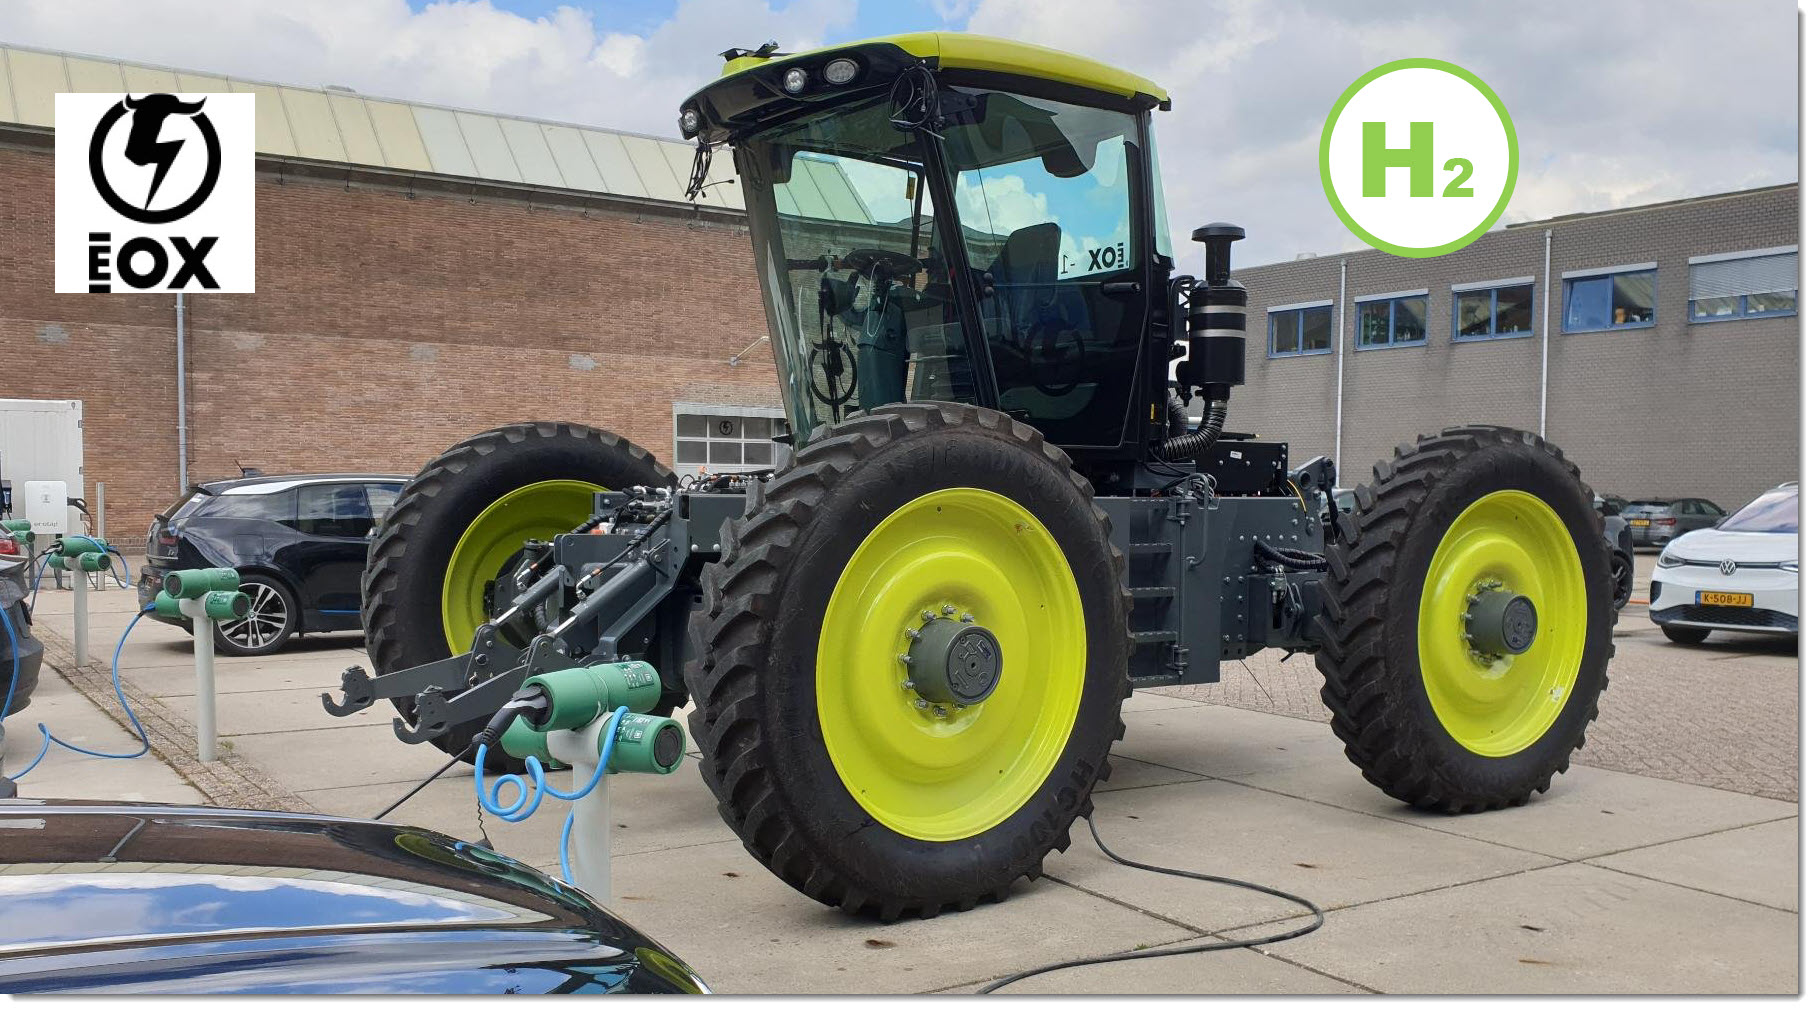 fuel cells works, First 100% Hydrogen EOX Electric Tractor Sold By H2trac